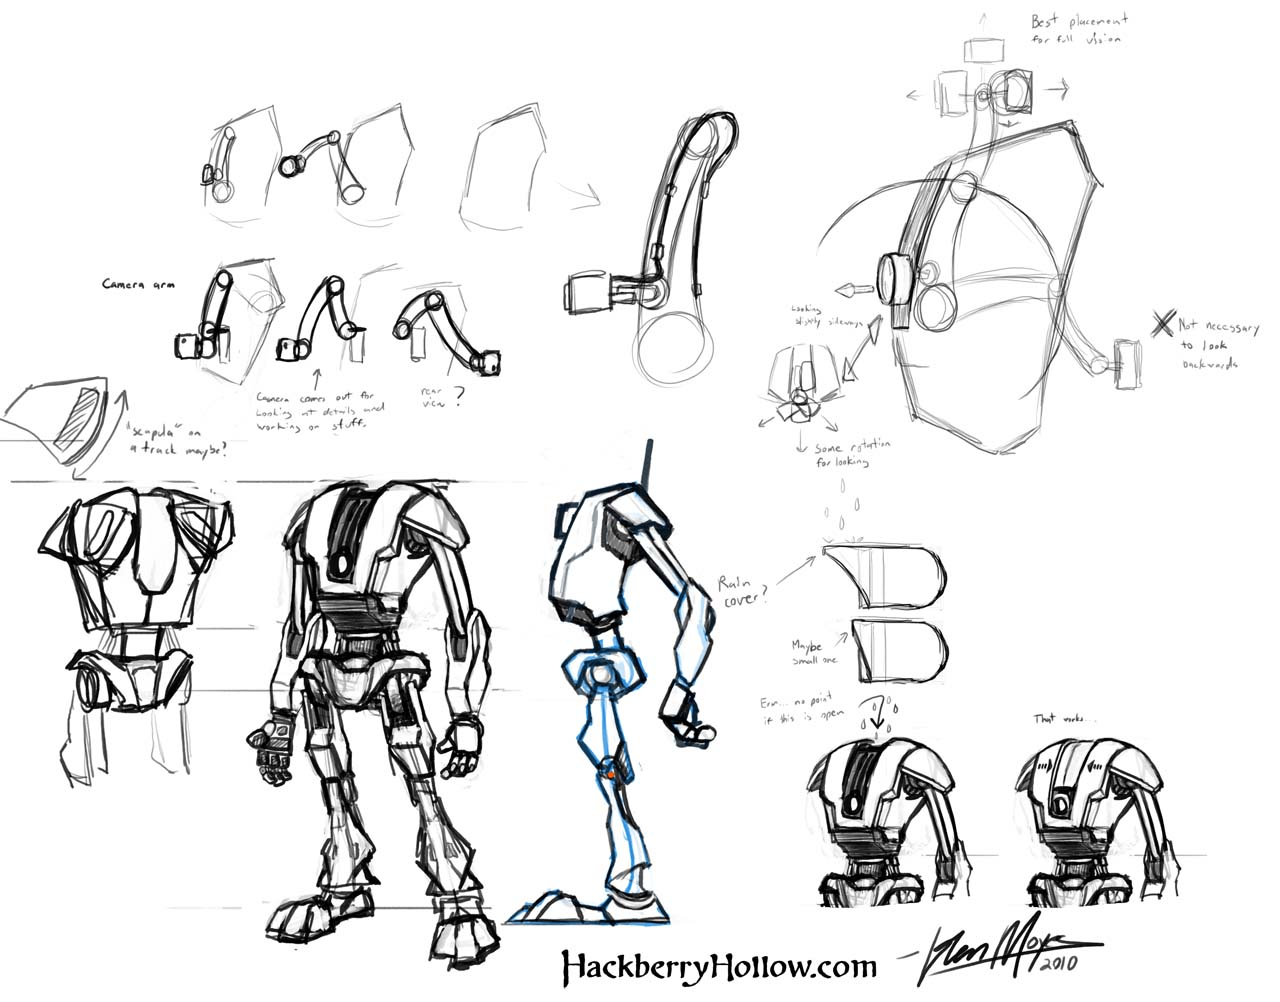 Robot Concept Drawings of The New Robot Design so